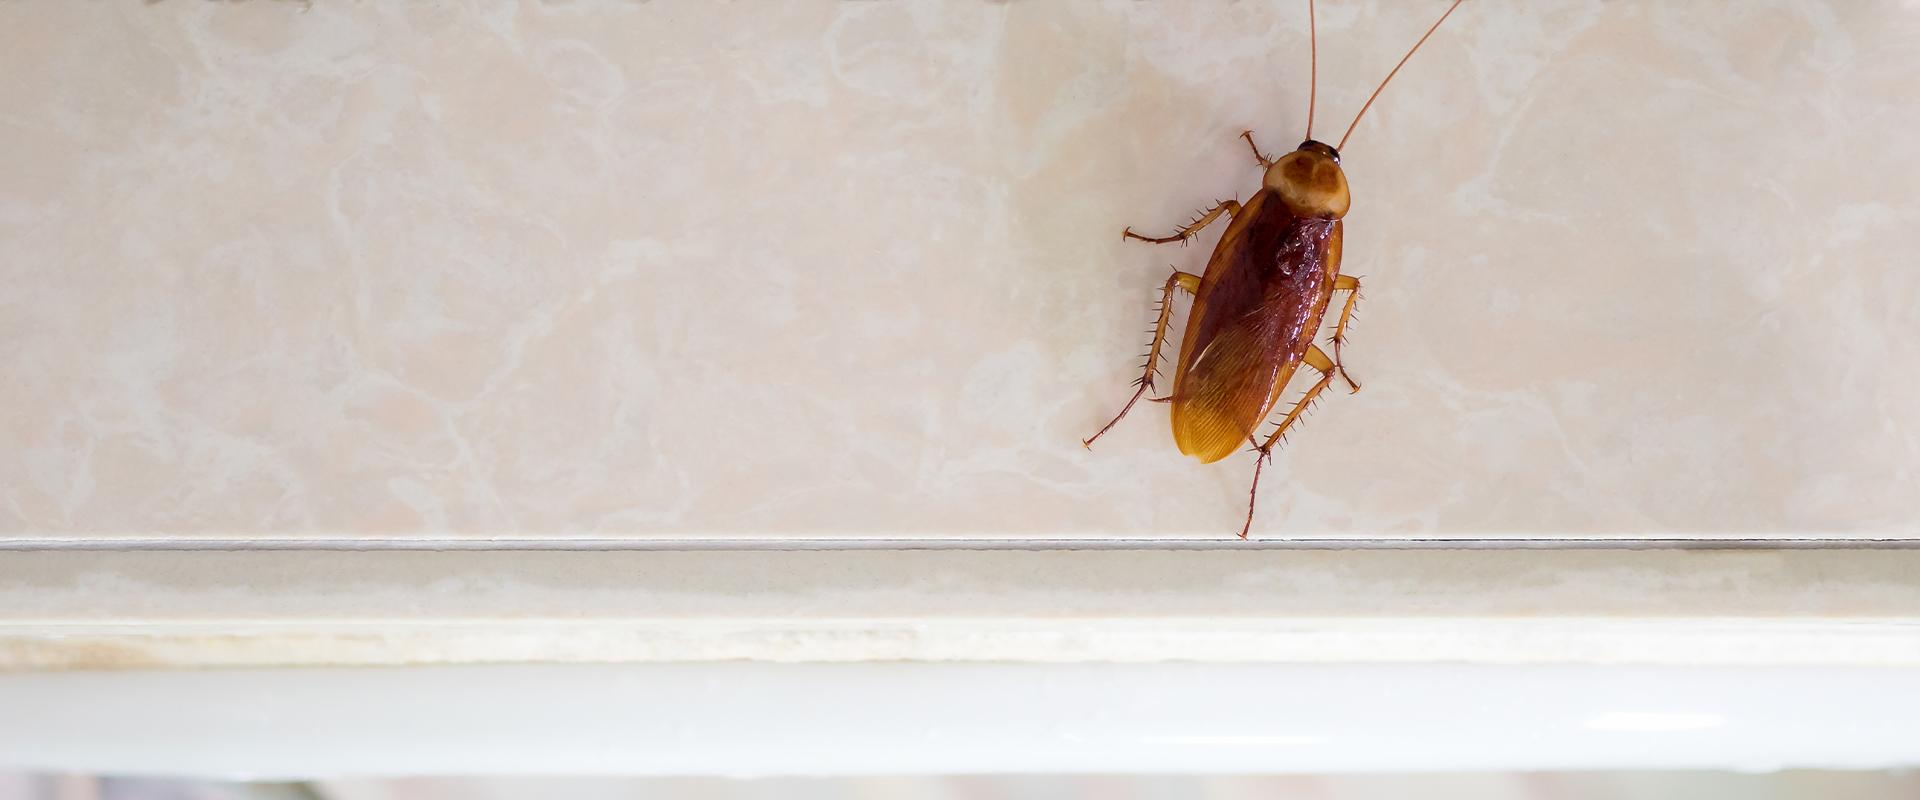 a cockroach crawling on marble